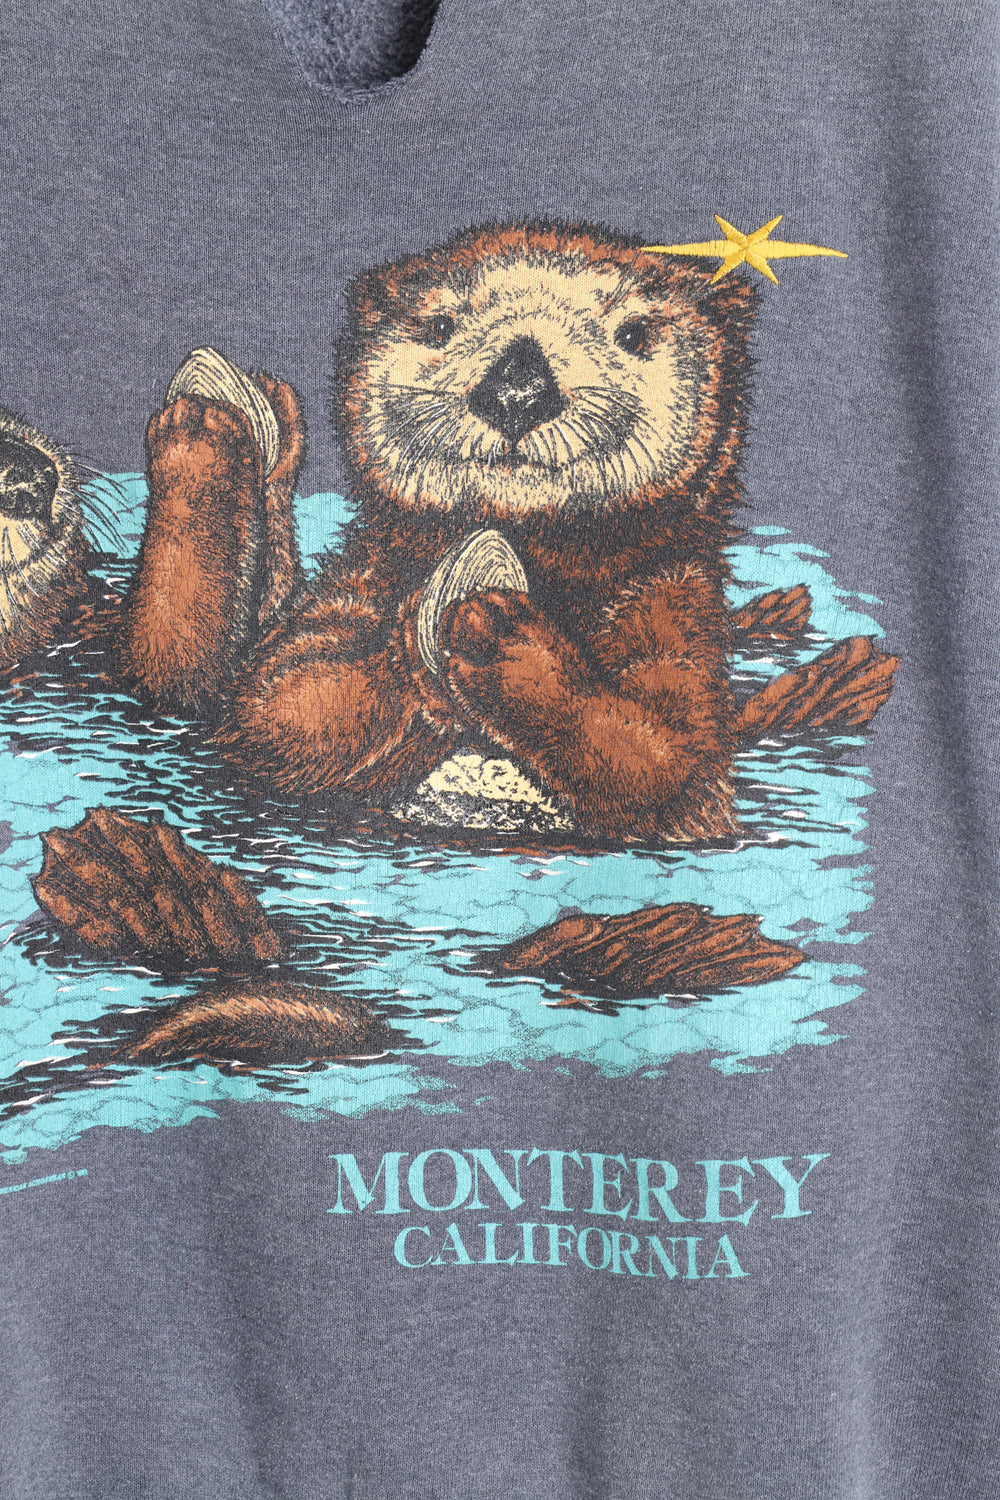 Monterey California Sweatshirt